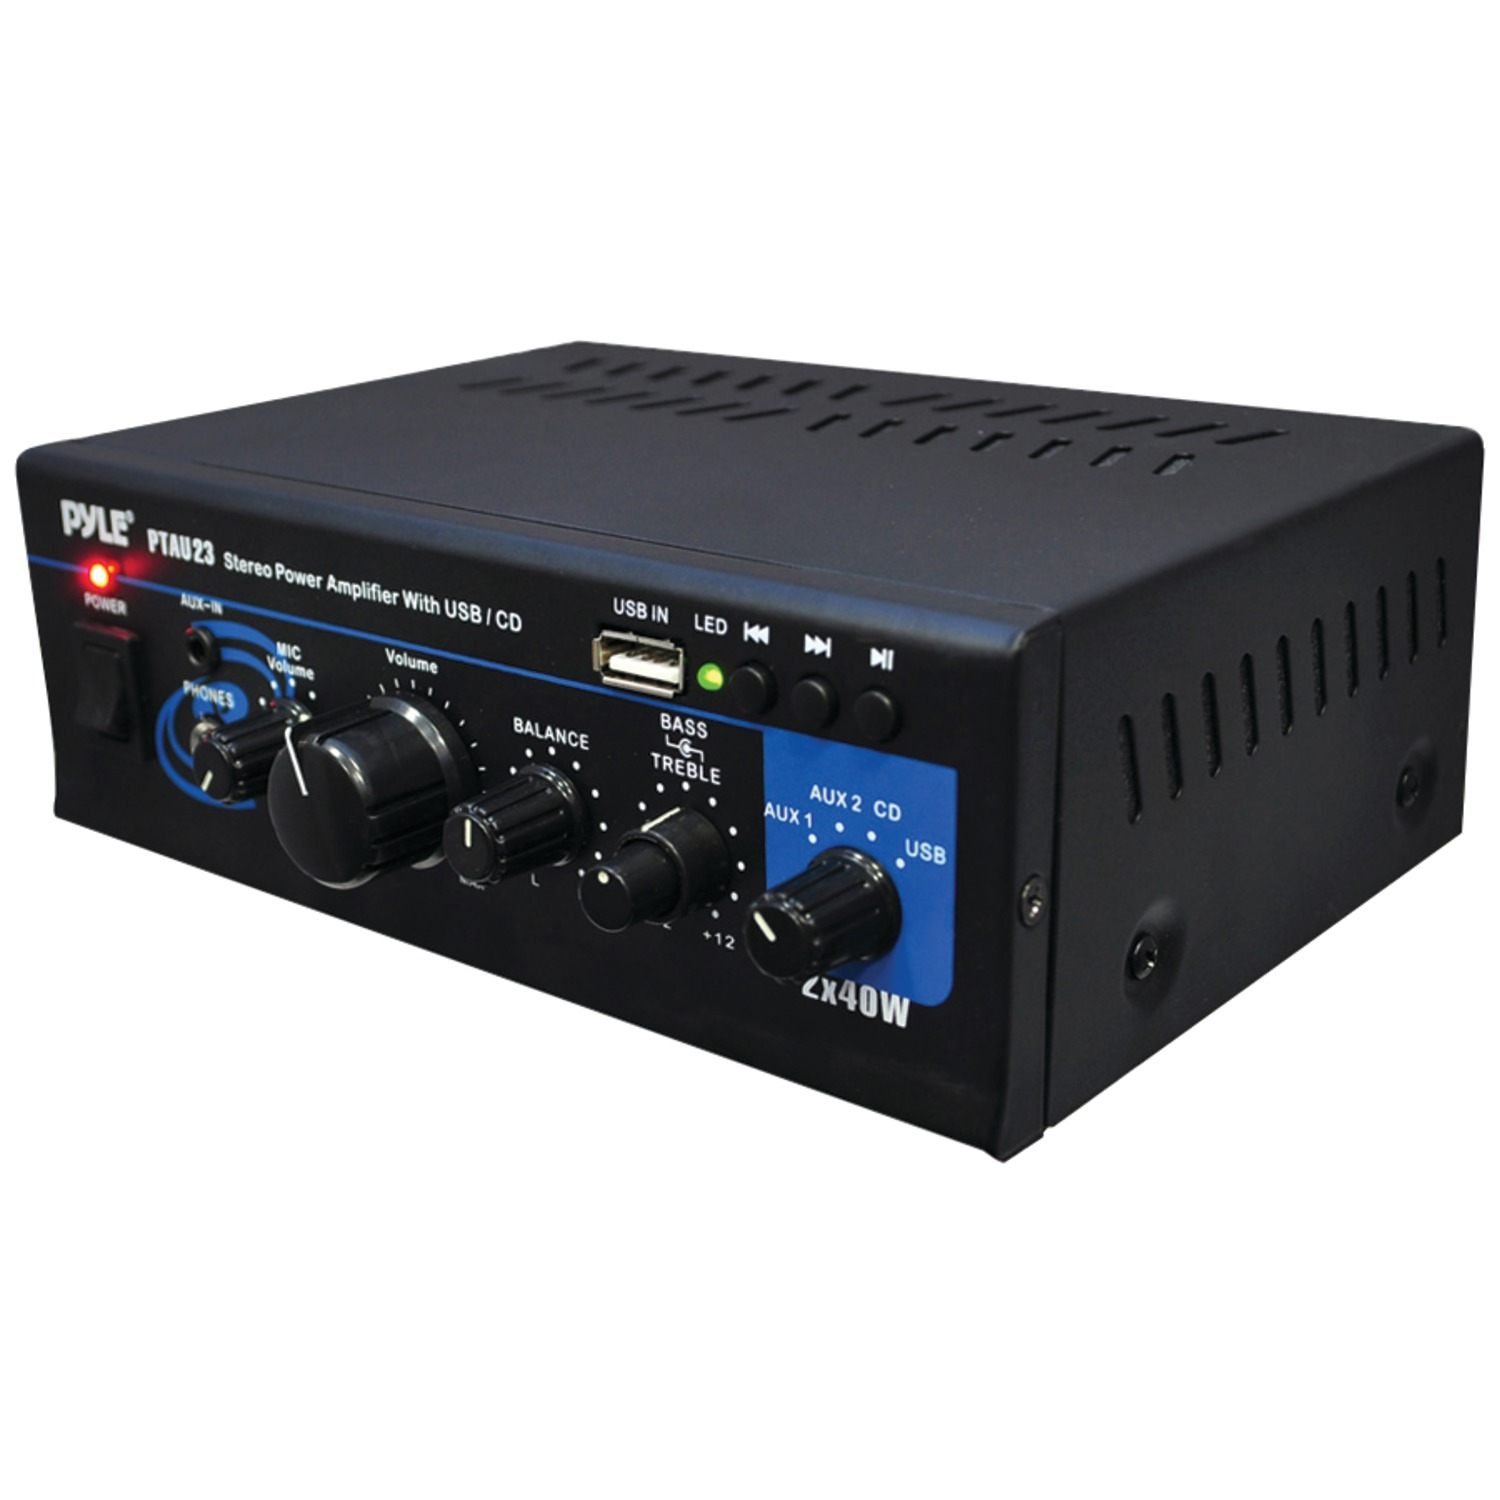 Pyle Home PTAU23 40-watt X 2 Mini Stereo Power Amp With Usb Reader